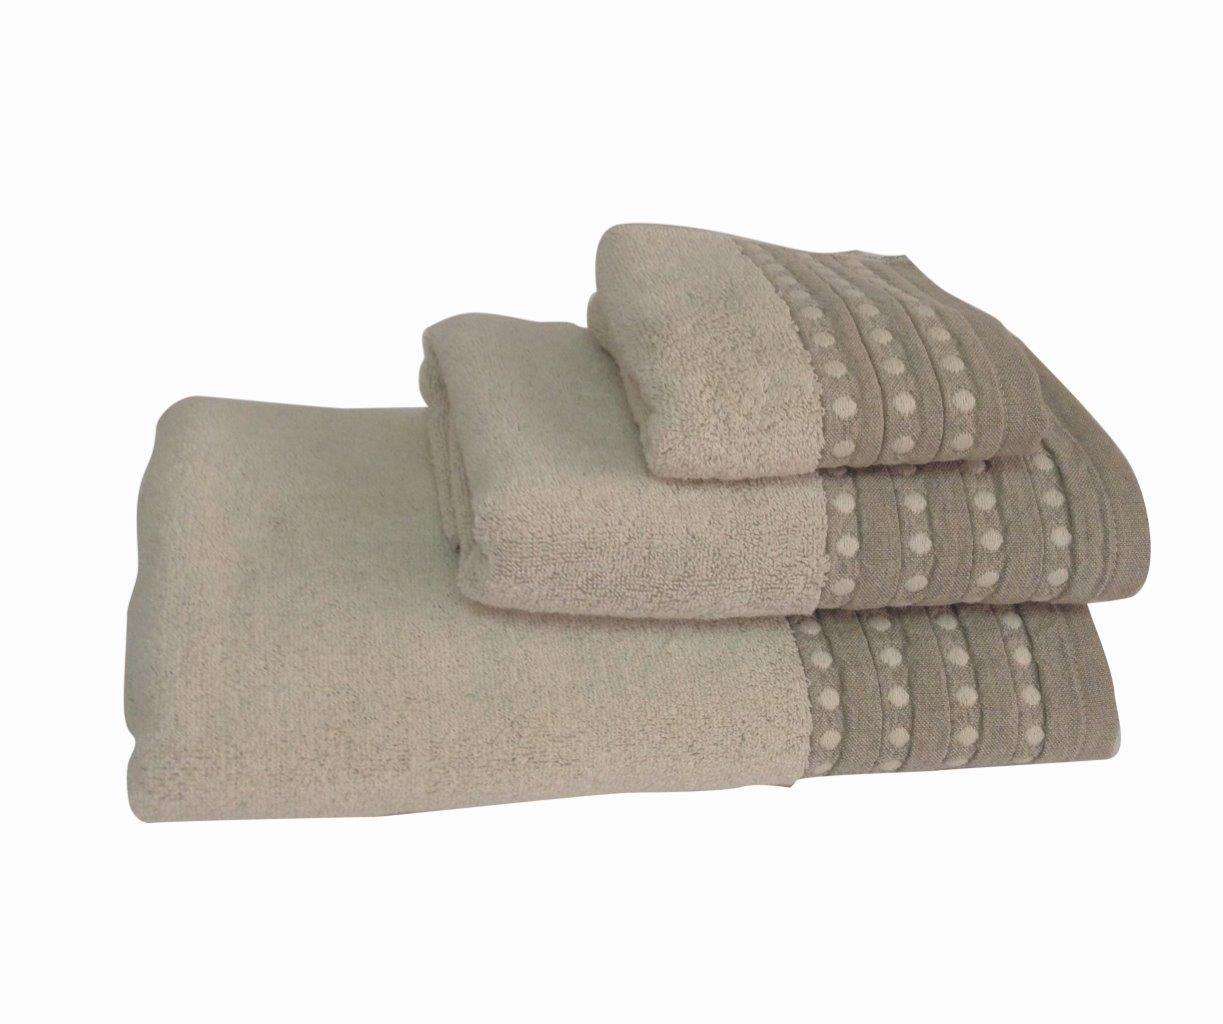 Spot Natural Bath Linen 95% Egyptian Cotton 5 % Linen. Face Cloth, Finger Towel, Guest Towel, Bath Towel, Bath Sheet